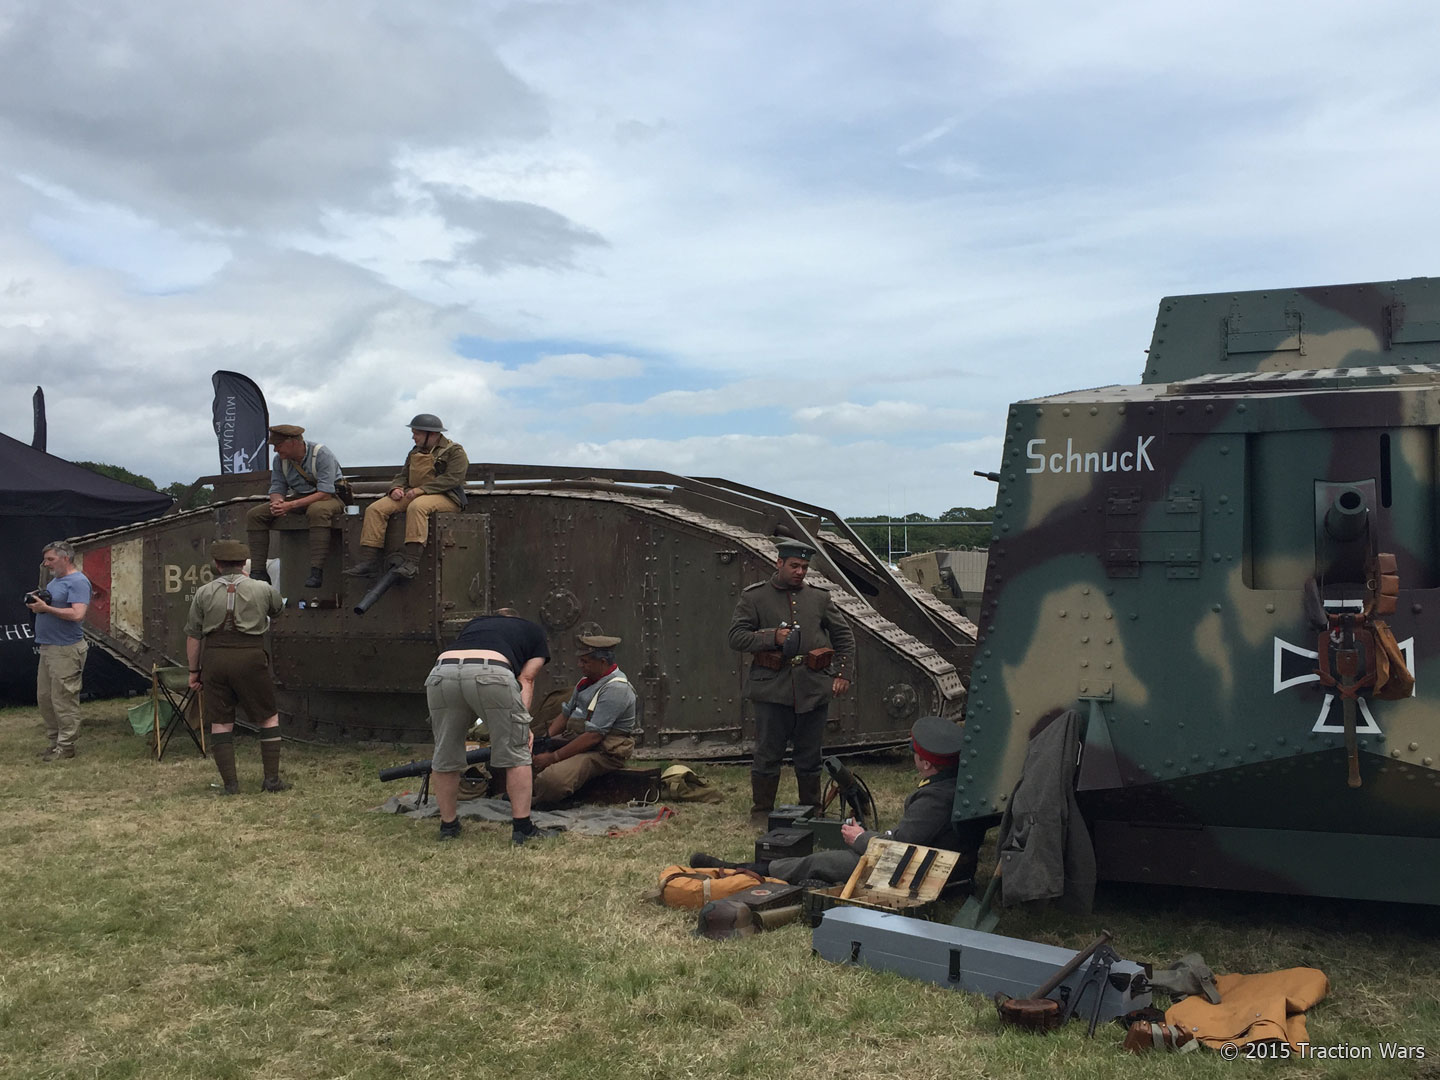 WWI Mark IV and Replica A7V Sturmpanzerwagan